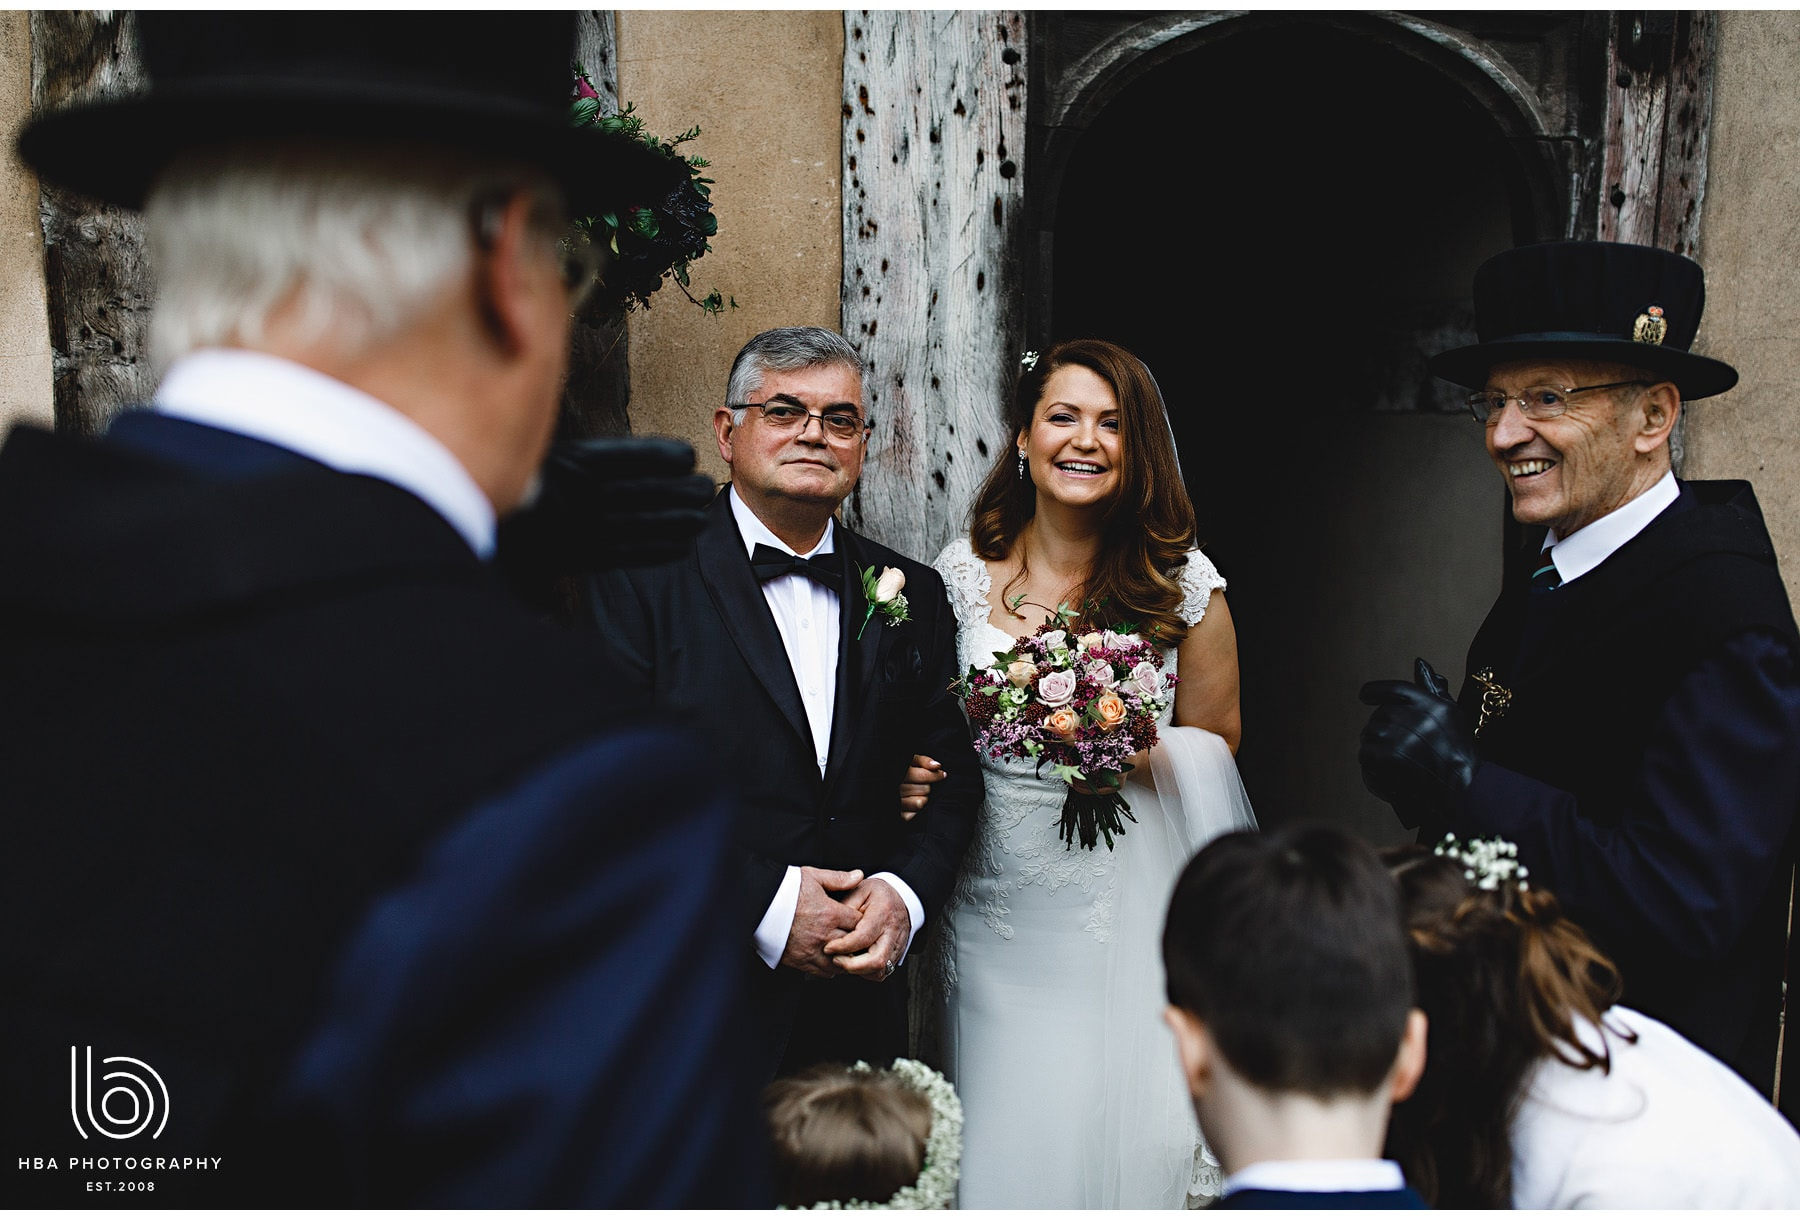 the bride and her dad about to walk into the ceremony